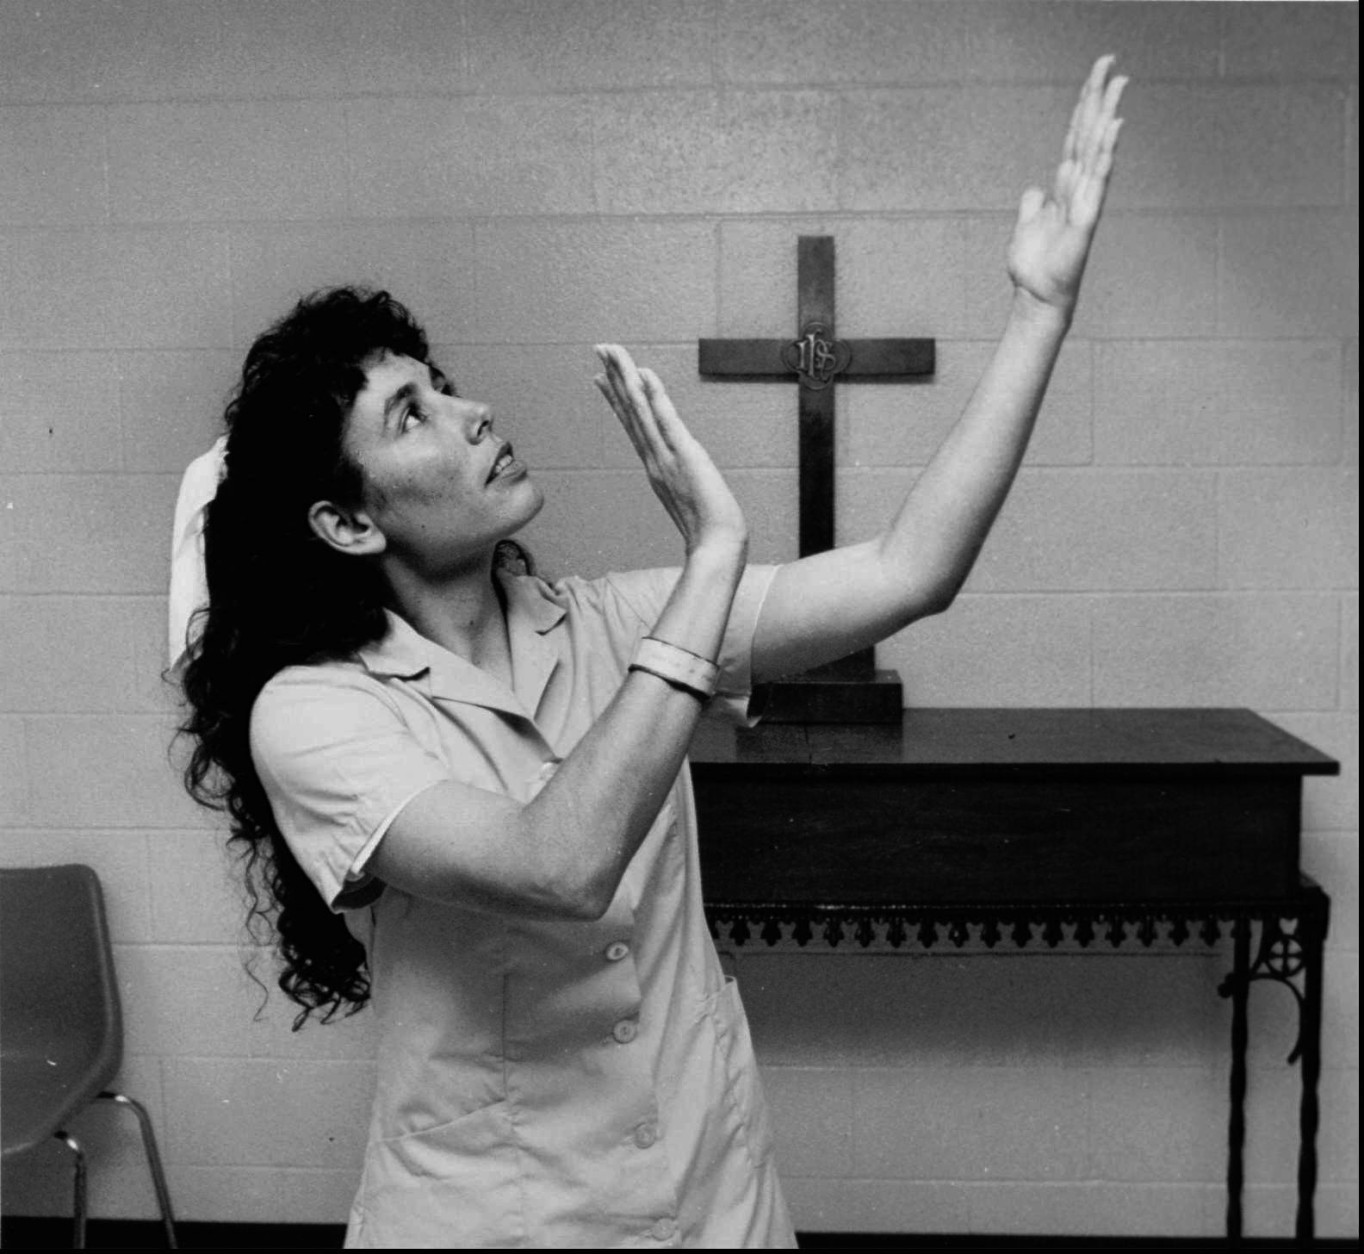 Karla Faye Tucker, shown in this undated photo, in Gatesville, Texas, lost an appeal Monday, Dec. 8, 1997, before the U.S. Supreme Court, clearing the way for the first execution of a woman in Texas since 1863. Tucker was convicted of the 1983 killing of a Houston man with a pickax. (AP Photo)